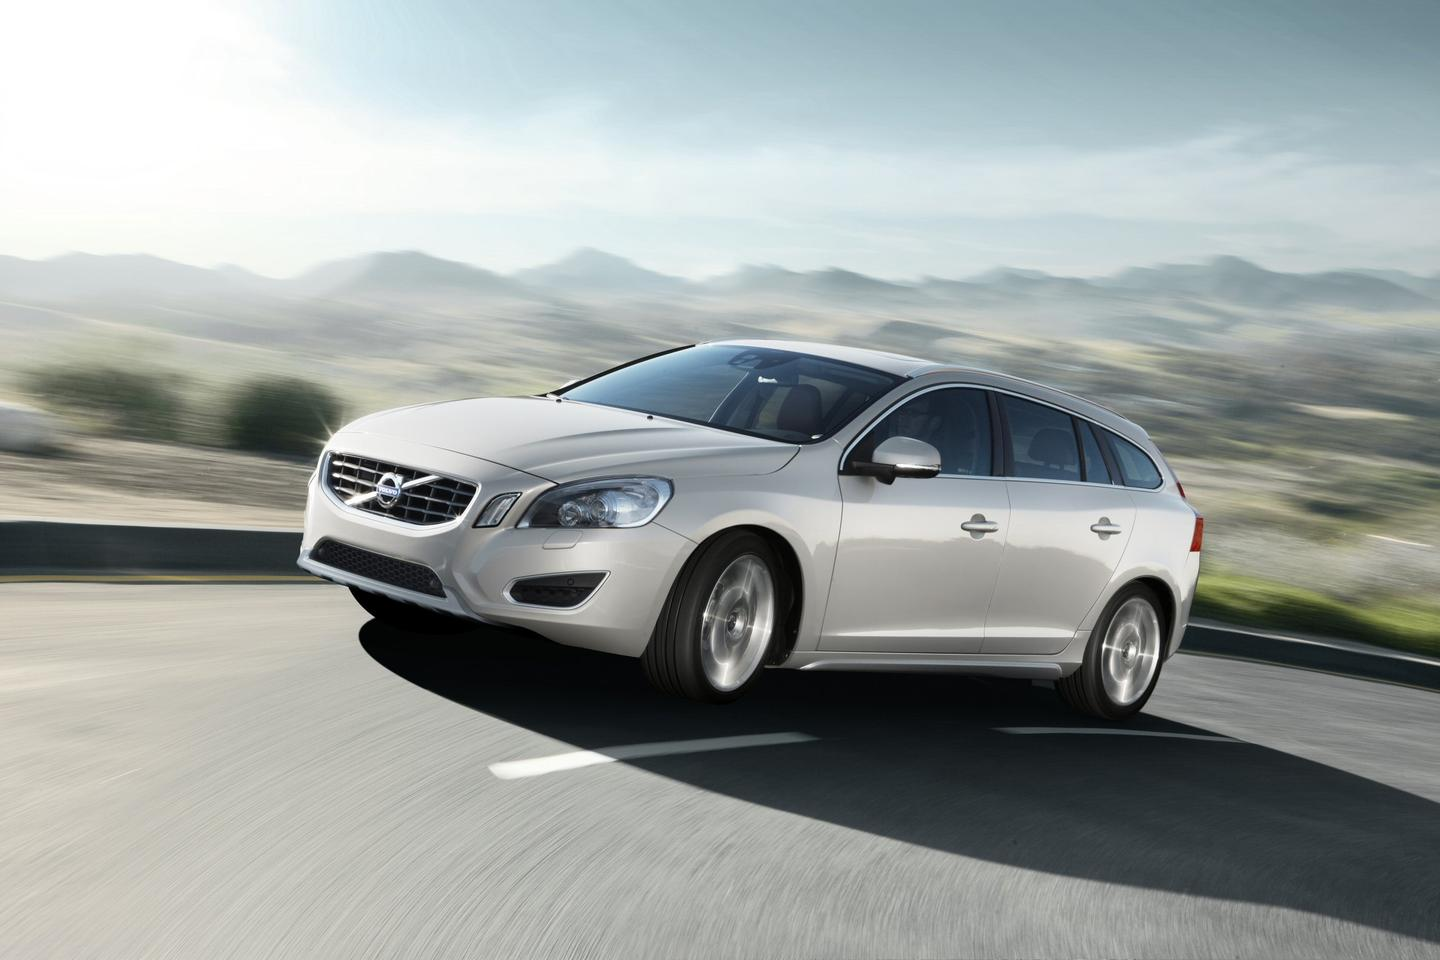 Volvo will unveil the V60 plug-in hybrid diesel at the 2011 Geneva Motor Show